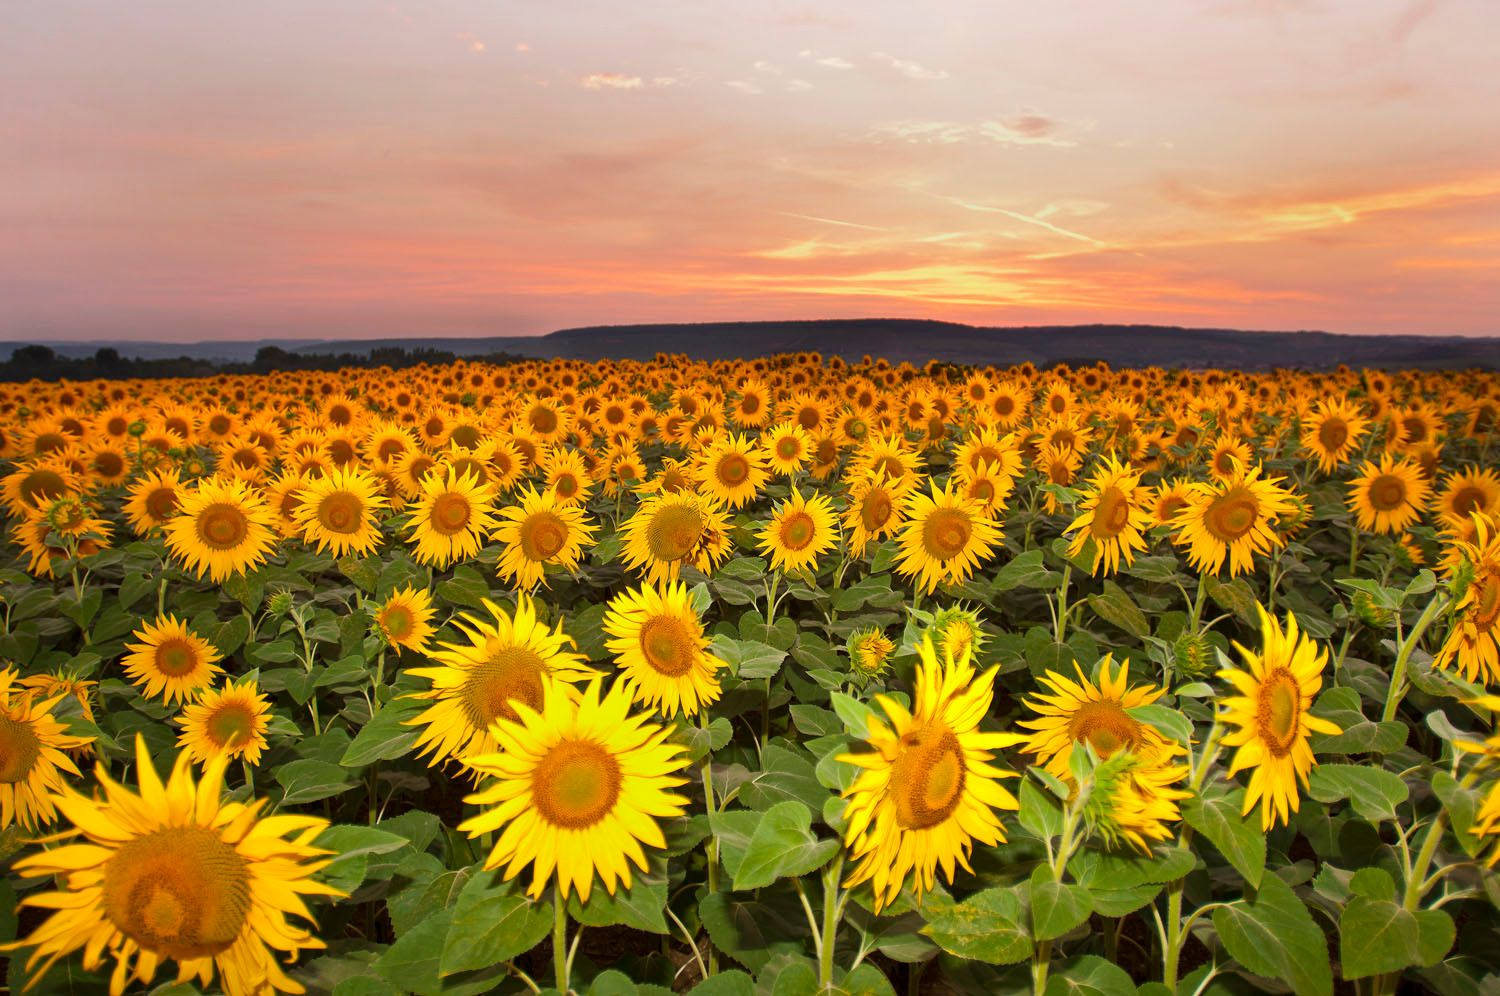 Field of Sunflowers at Sunset in the Cote d'Or